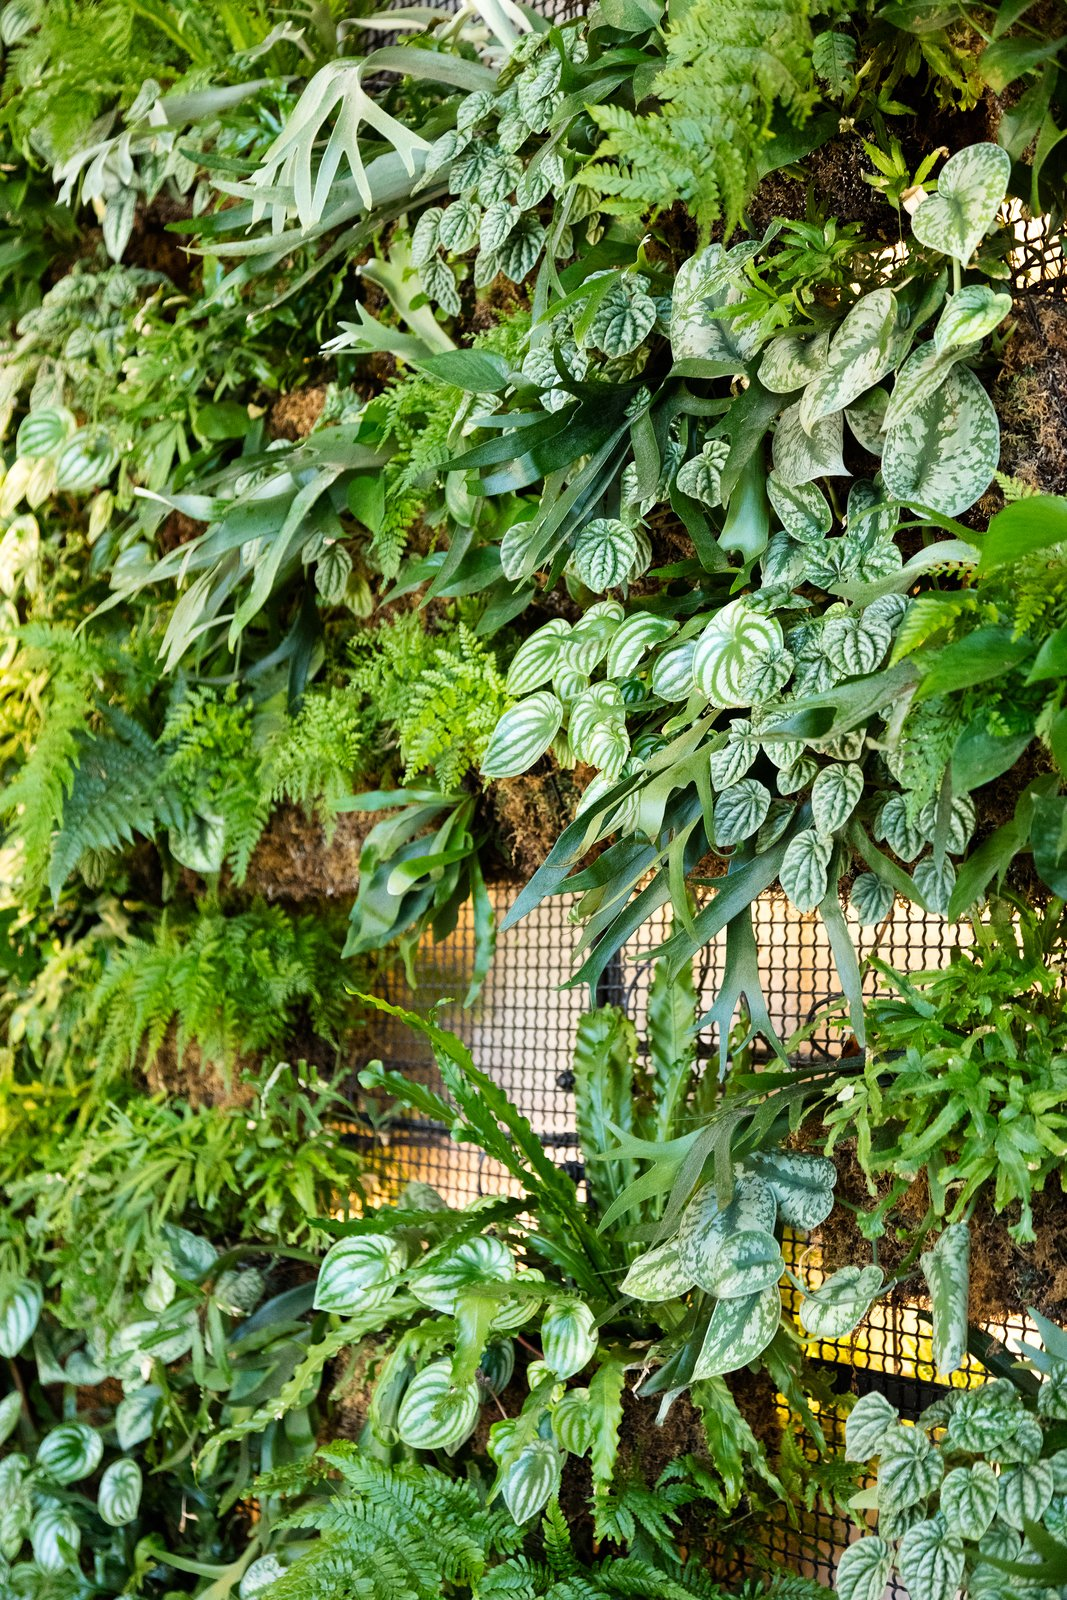 Photo 6 of 7 in Check Out This Brooklyn Hotel's Dramatic Living Wall Installation